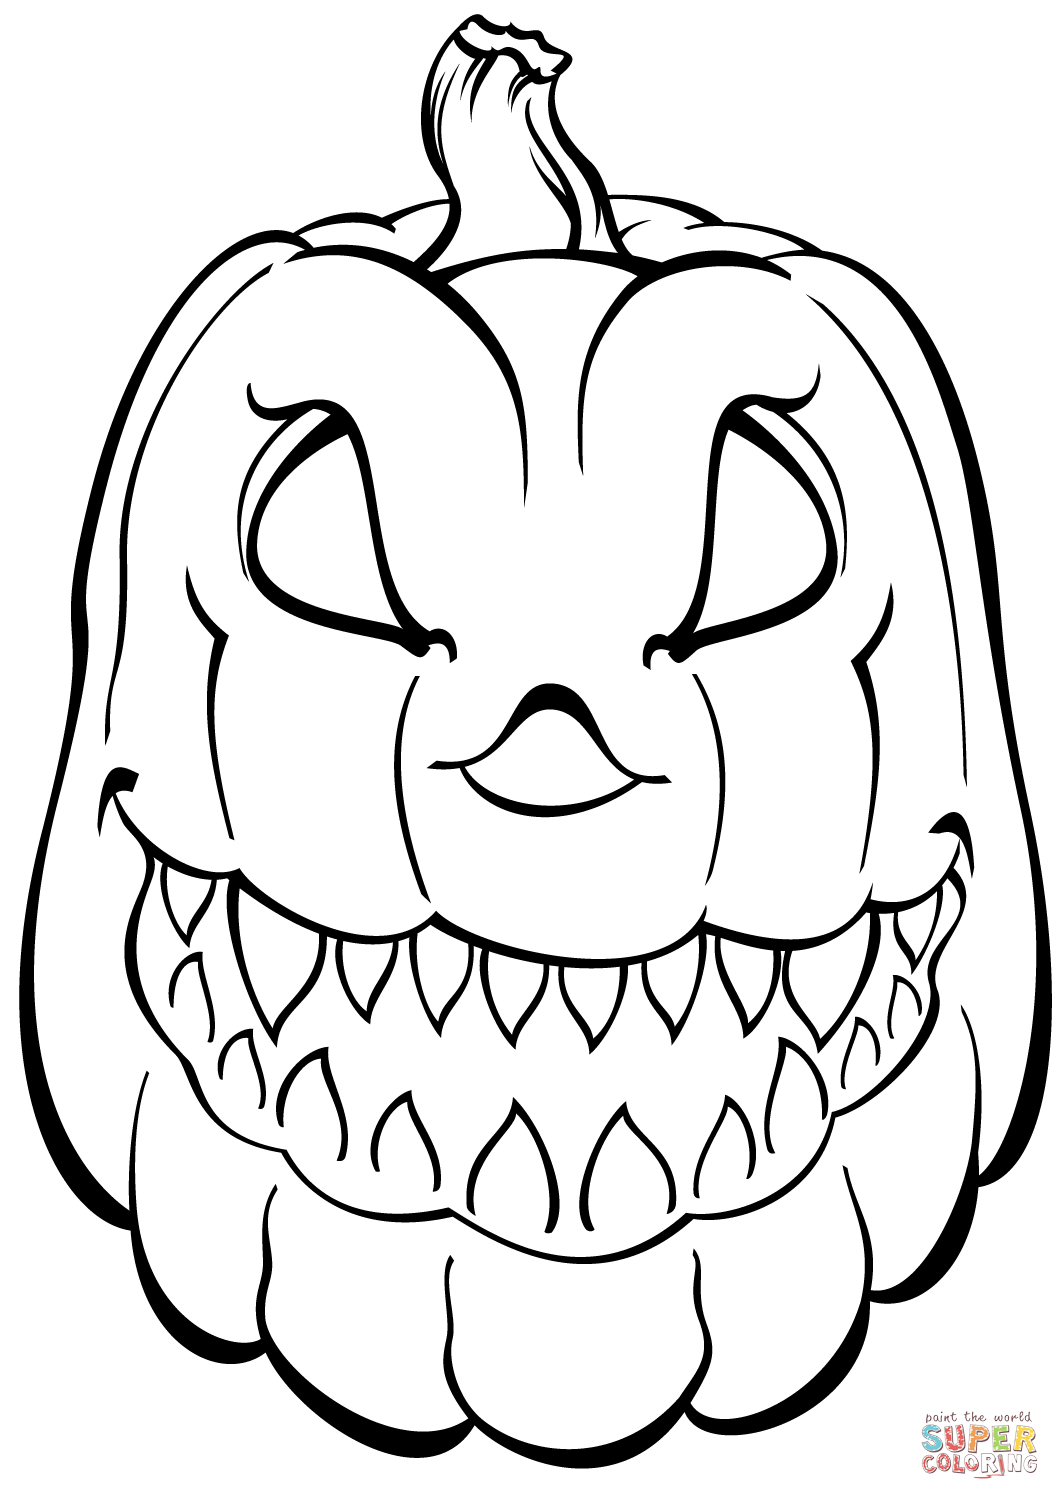 Scary Pumpkin Coloring Page